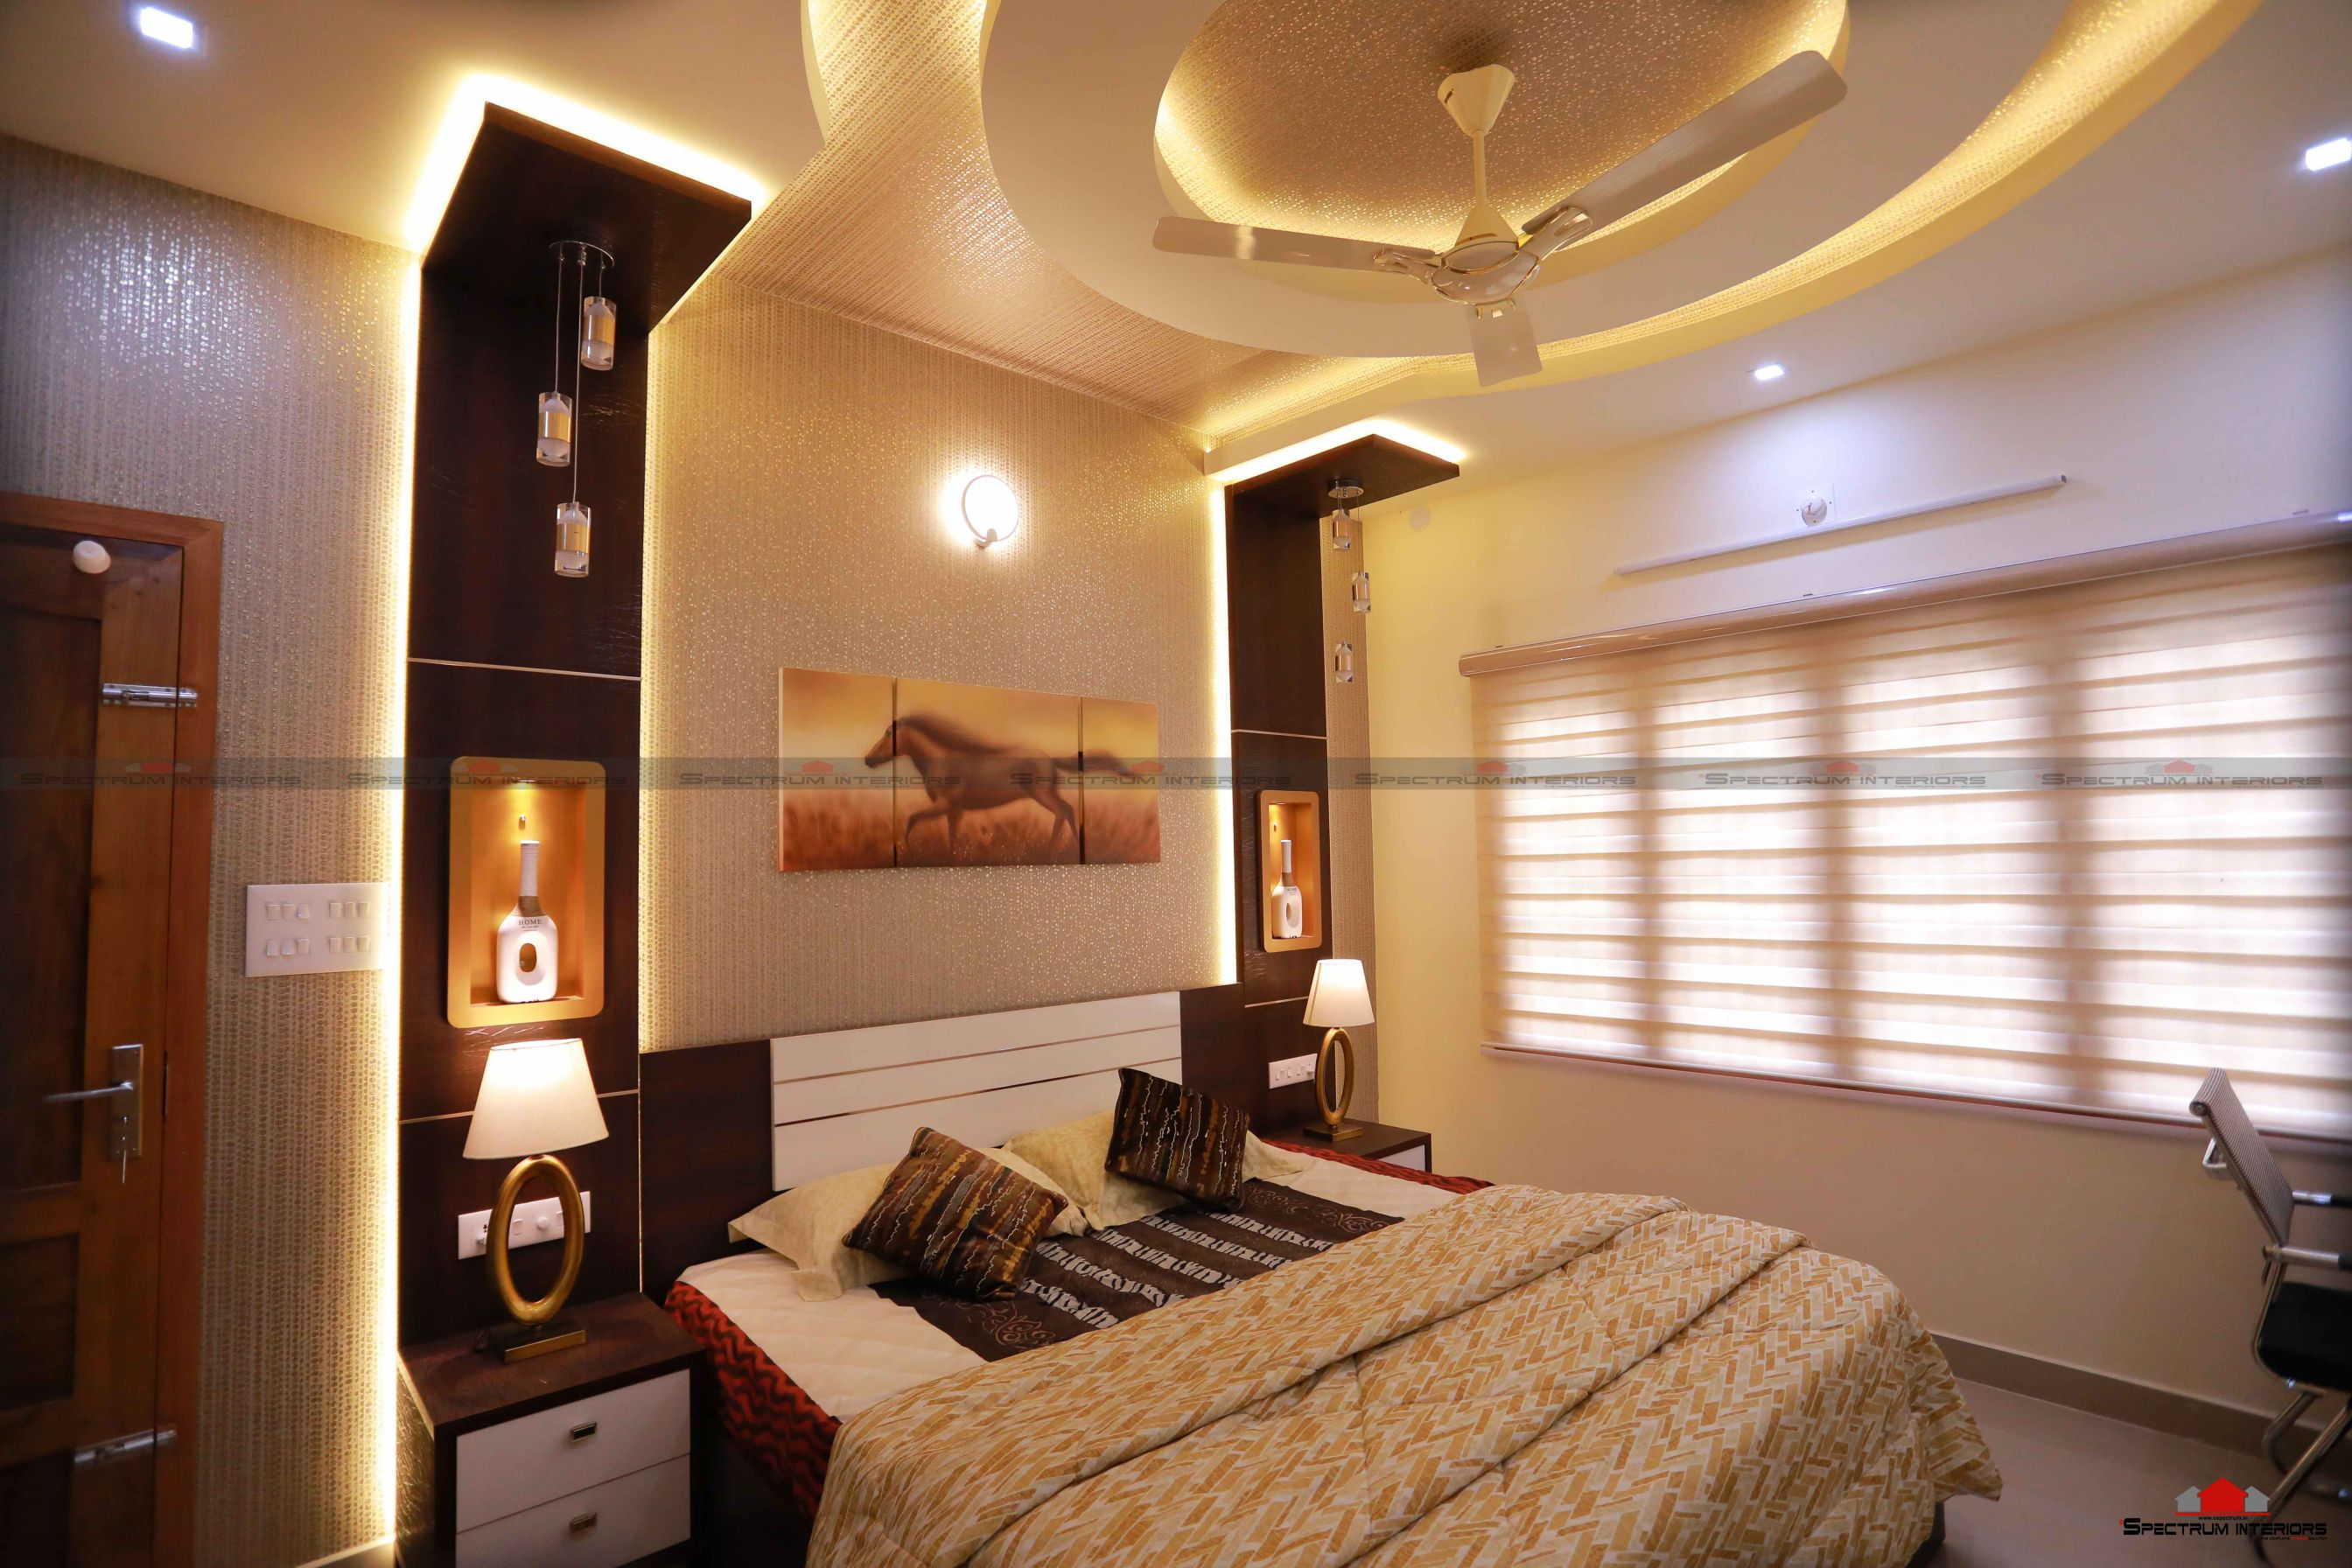 E Spectrum Interiors Best Interior Designers In Kerala Interiors Interior Design Best Interior In Kerala Home Interior Designer Interior Design Company In Kerala Office Interior Designer Interiors Cochin And Kerala Interior